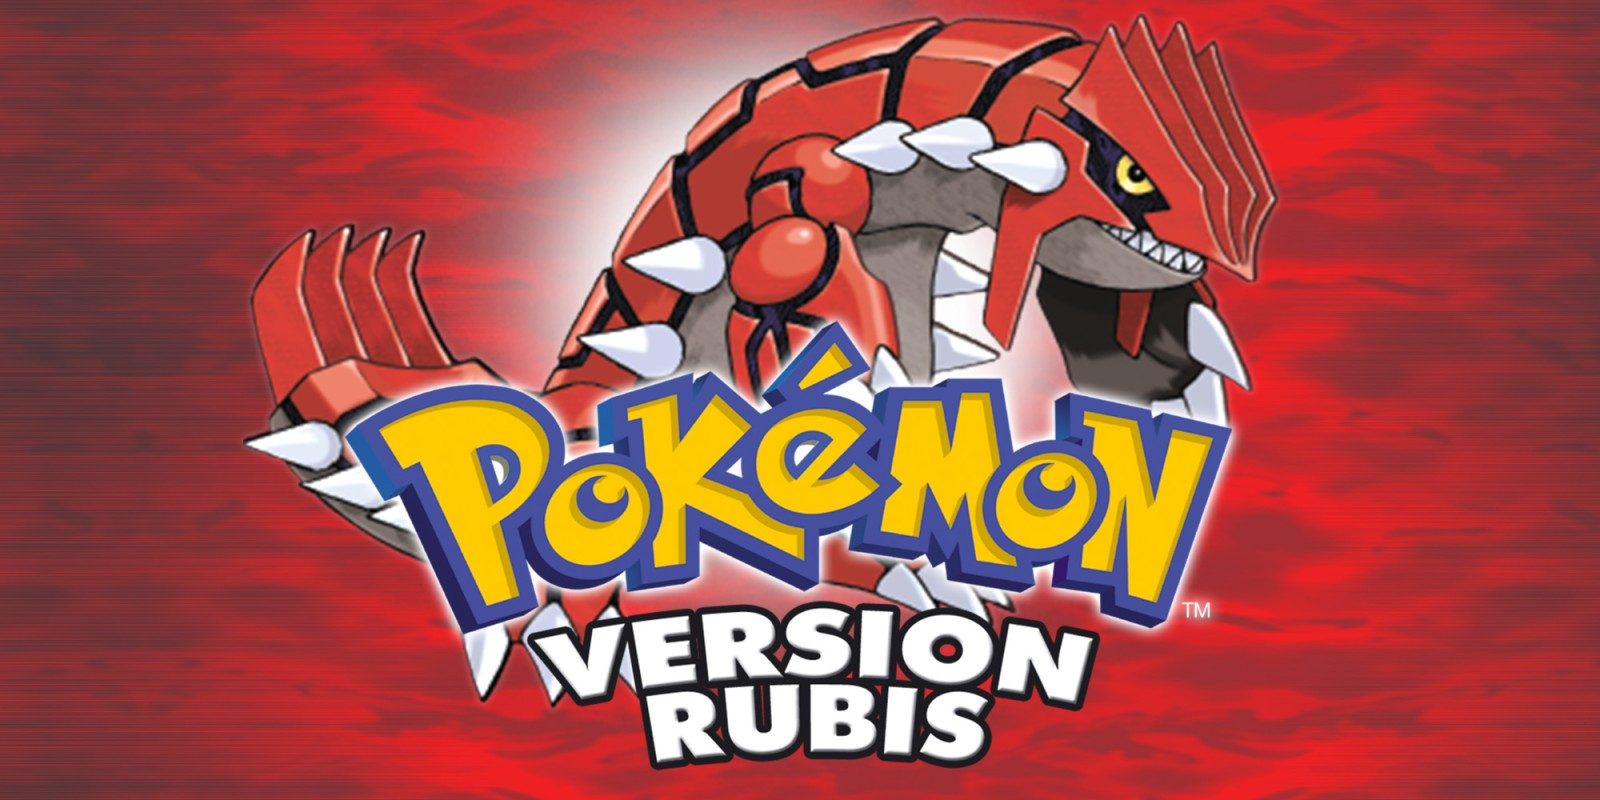 Pokémon Version rubis